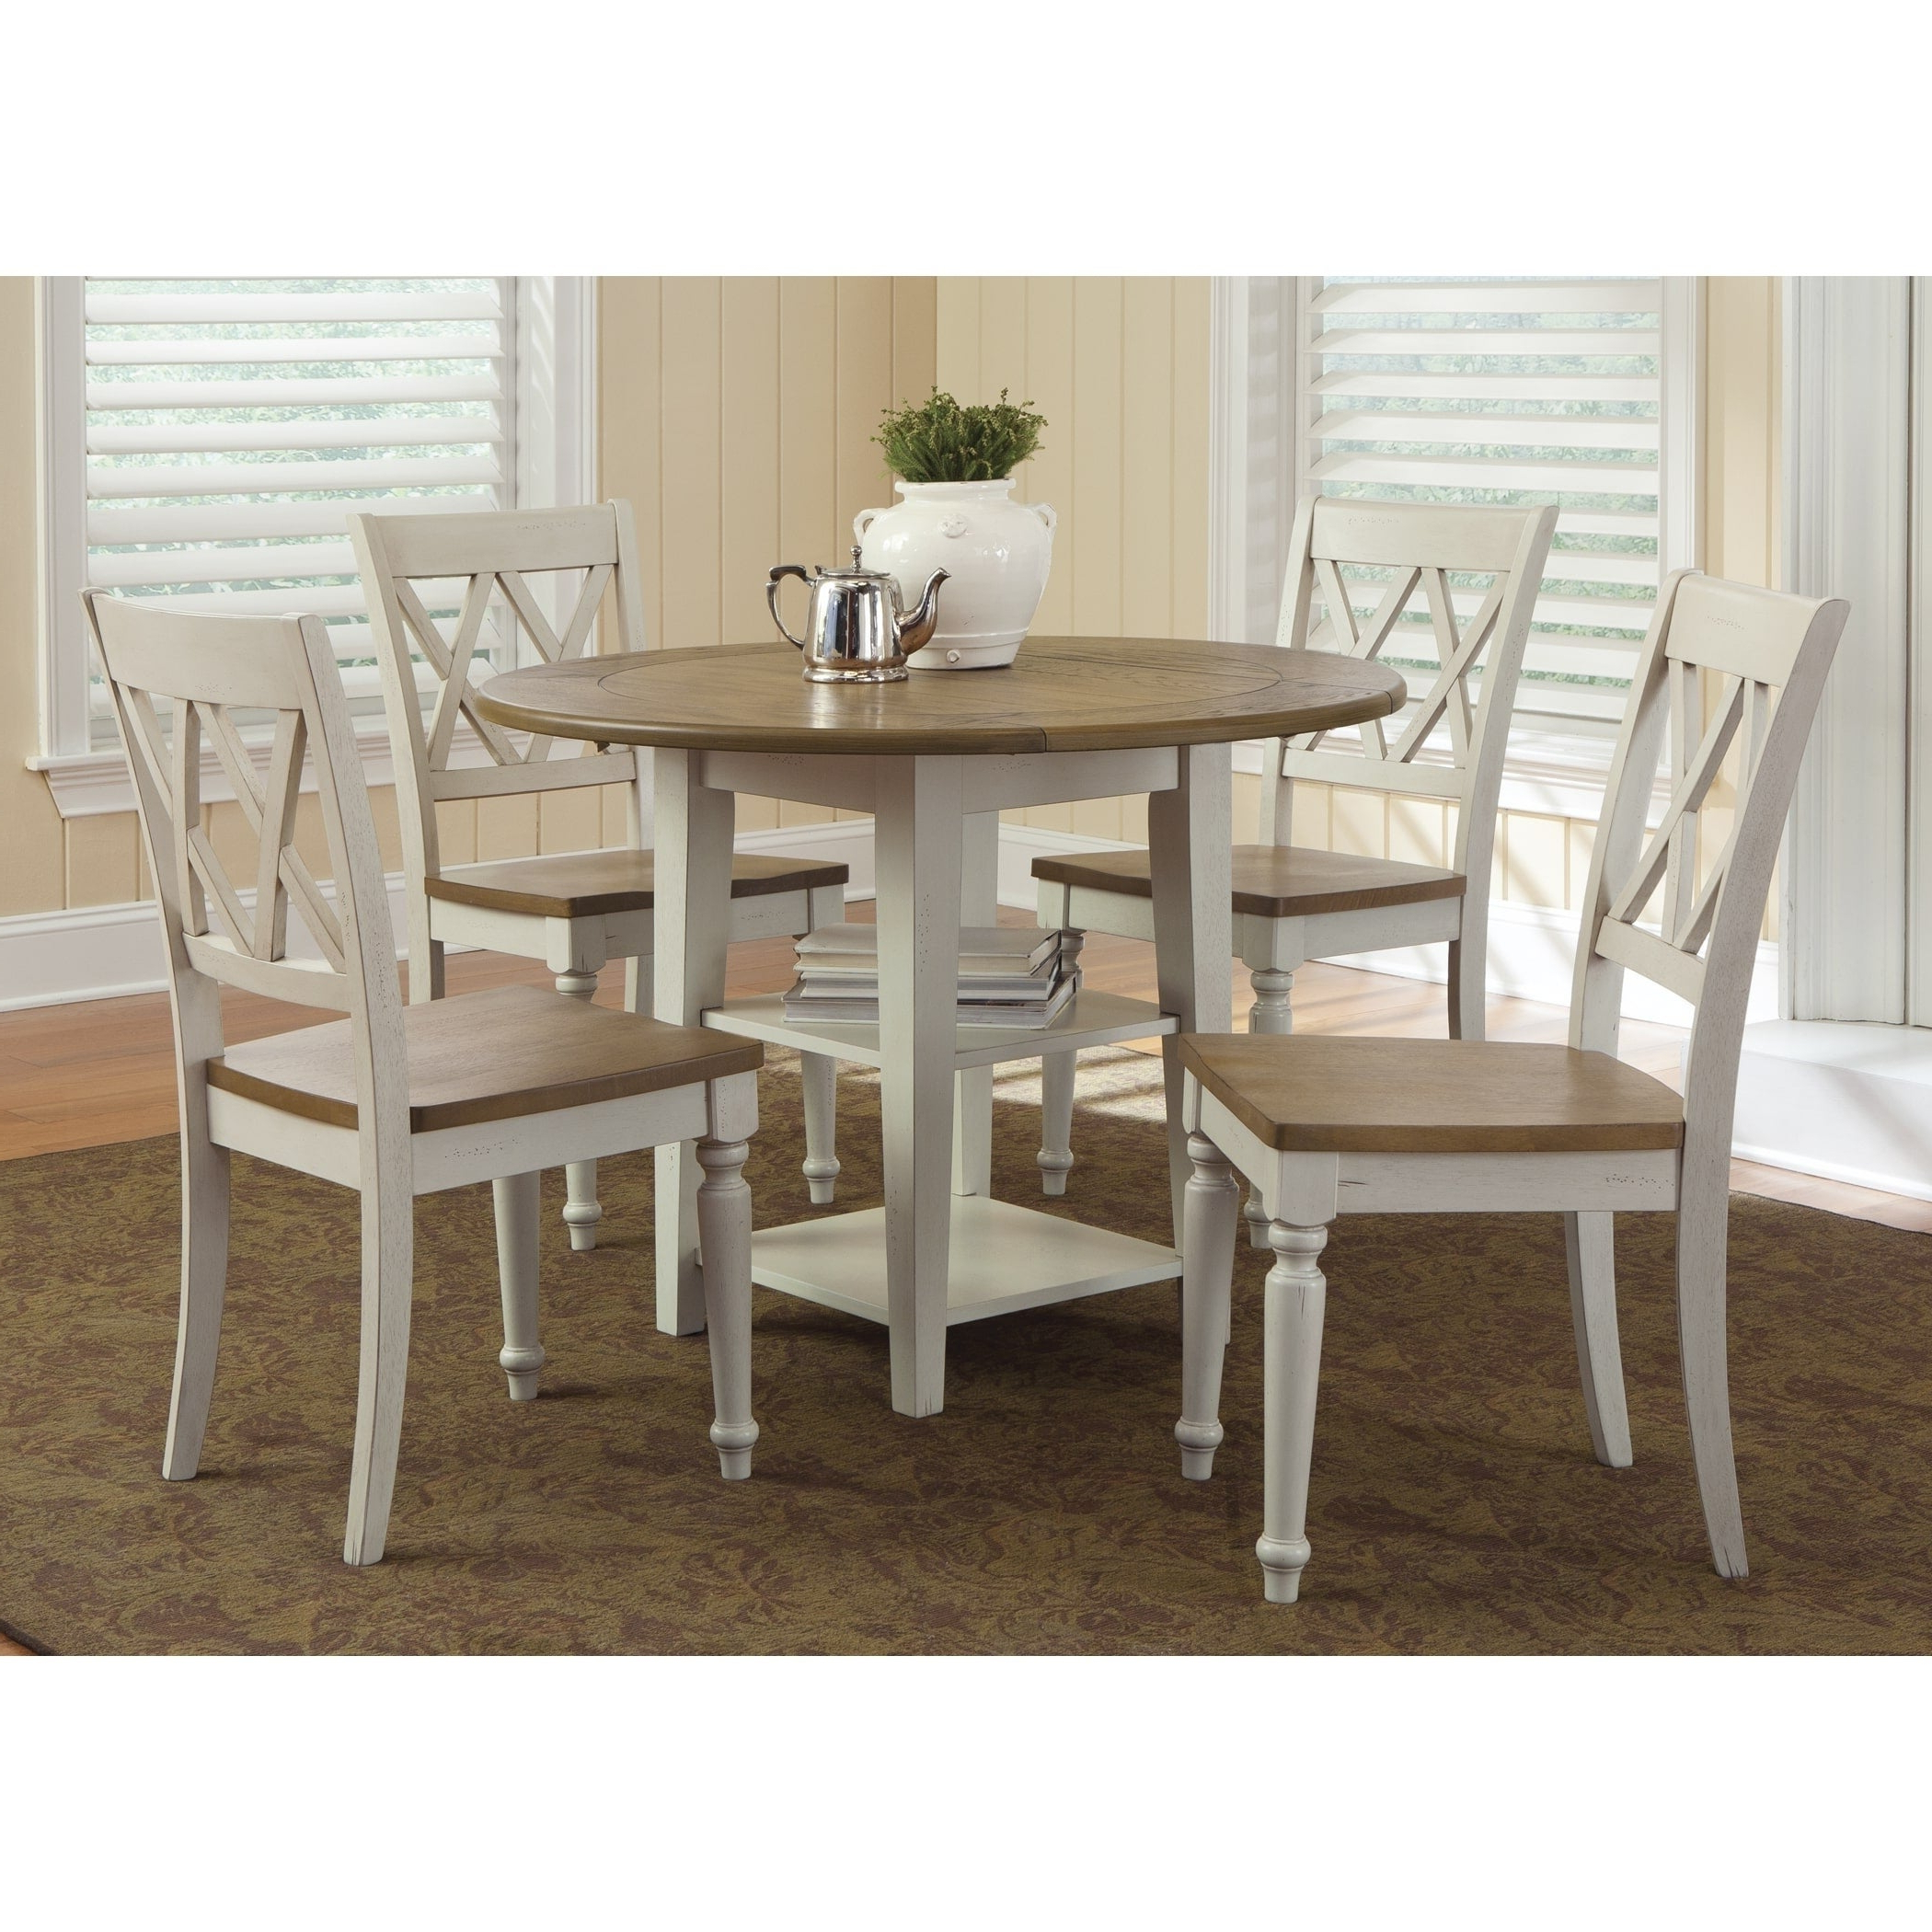 Transitional 4 Seating Drop Leaf Casual Dining Tables With Most Recent Al Fresco Two Tone Transitional Drop Leaf Leg Table – Antique White (View 15 of 25)